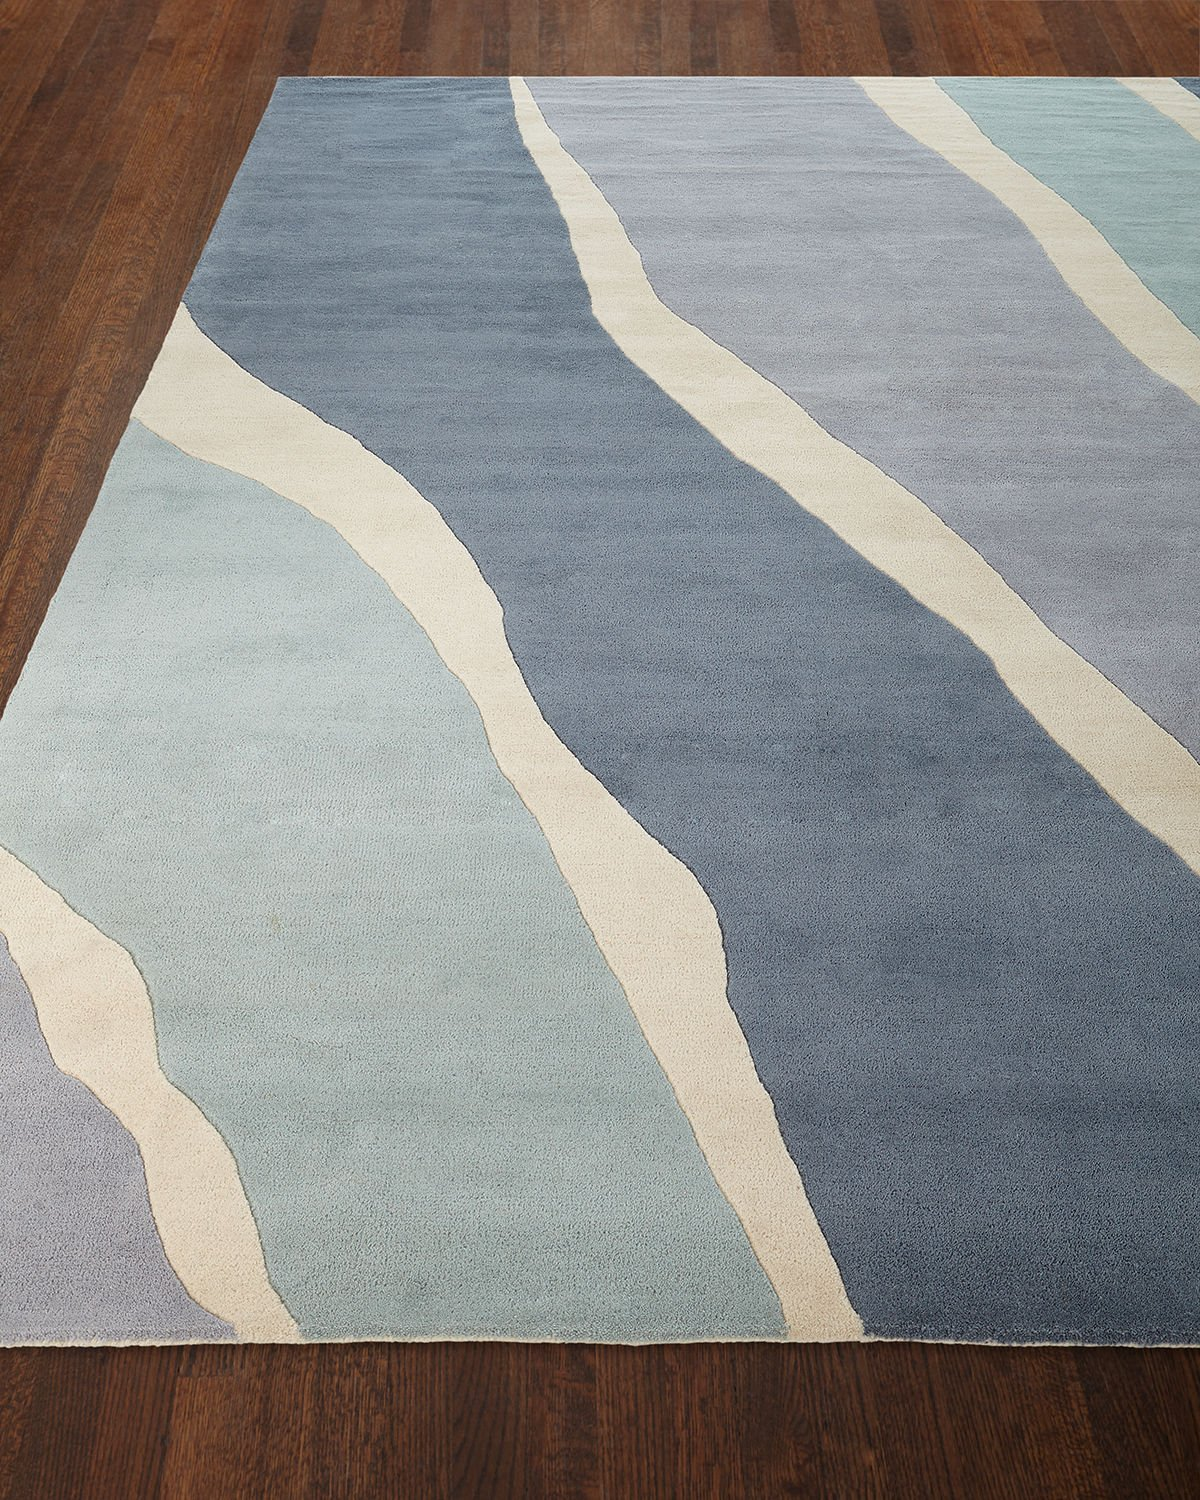 Ocean Waves Hand-Tufted Rug, 9' x 12' Product Image